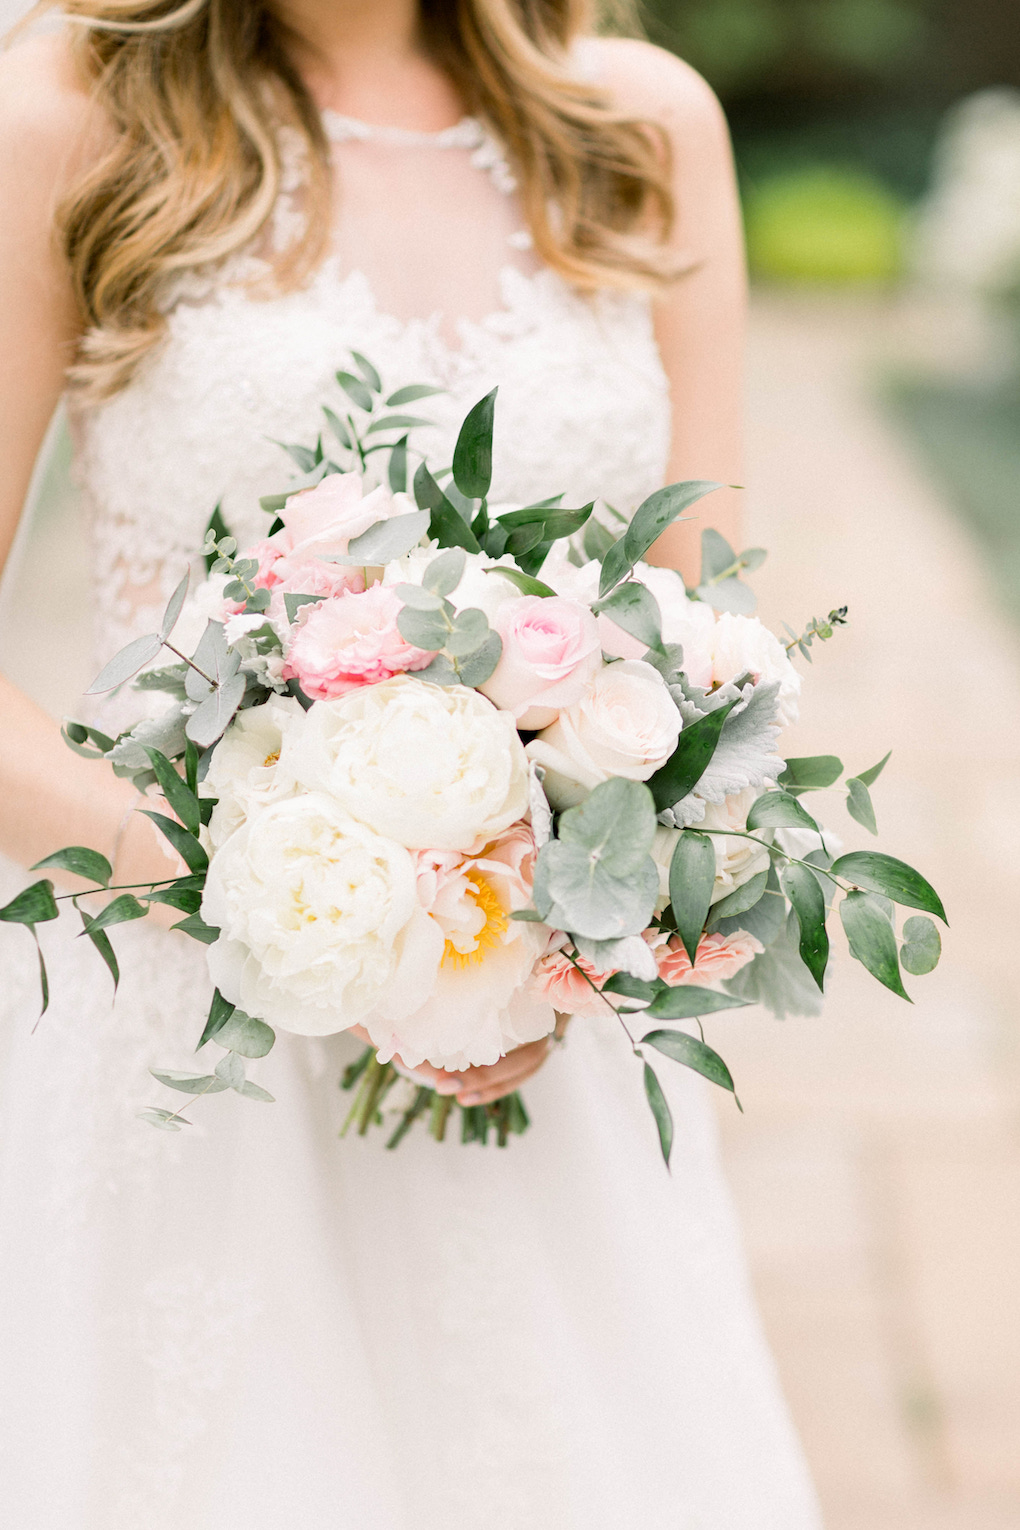 Pink and white bridal bouquet: Romantic Fairytale wedding at the Omni William Penn in Pittsburgh, PA planned by Exhale Events. Find more wedding inspiration at exhale-events.com!